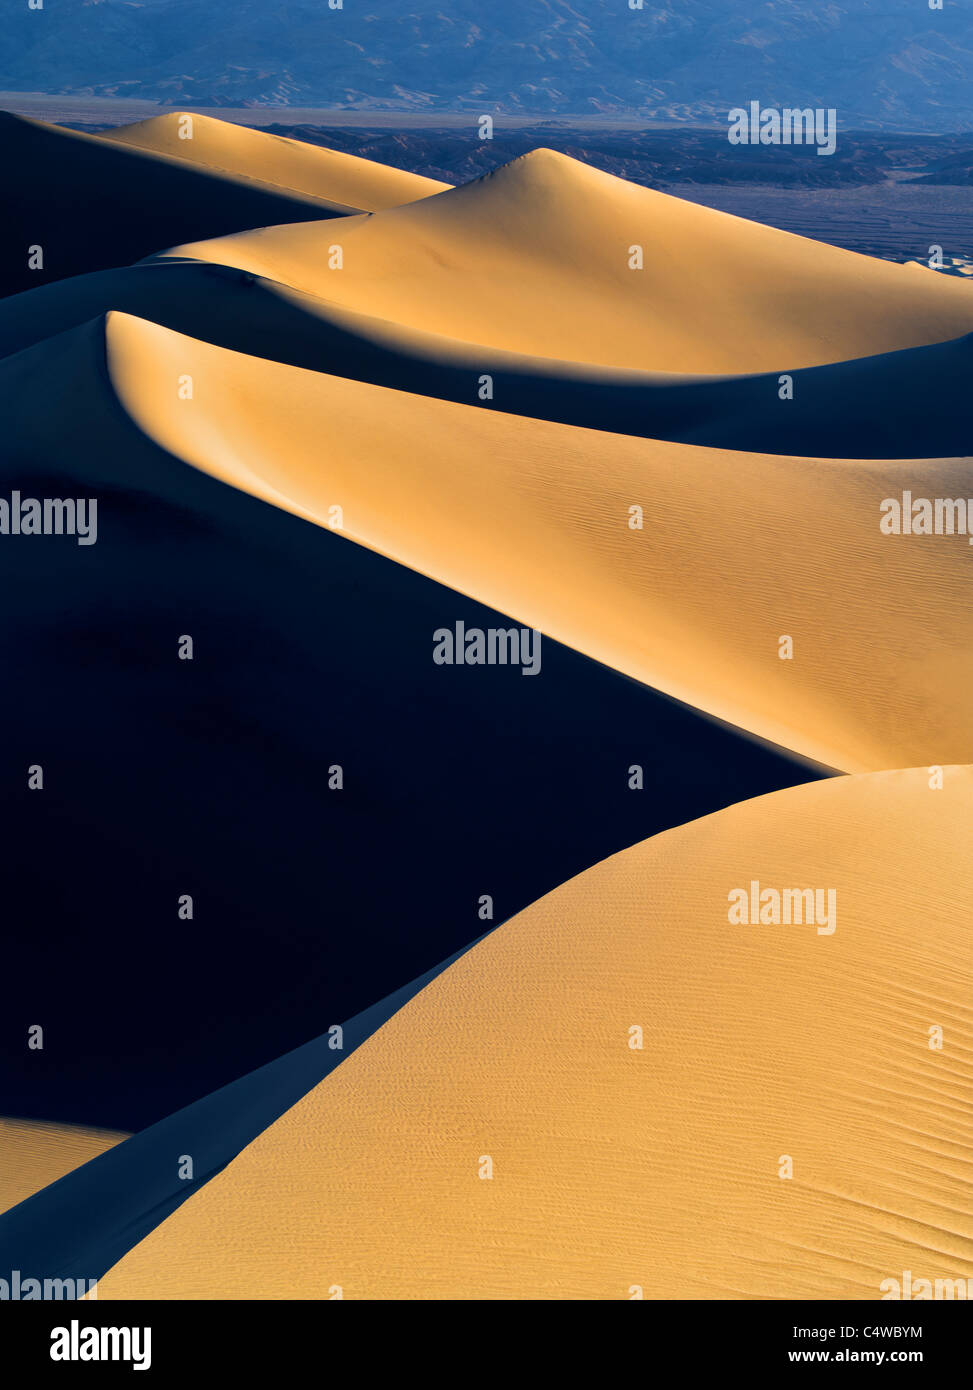 First light on sand dunes. Death Valley National Park, California - Stock Image